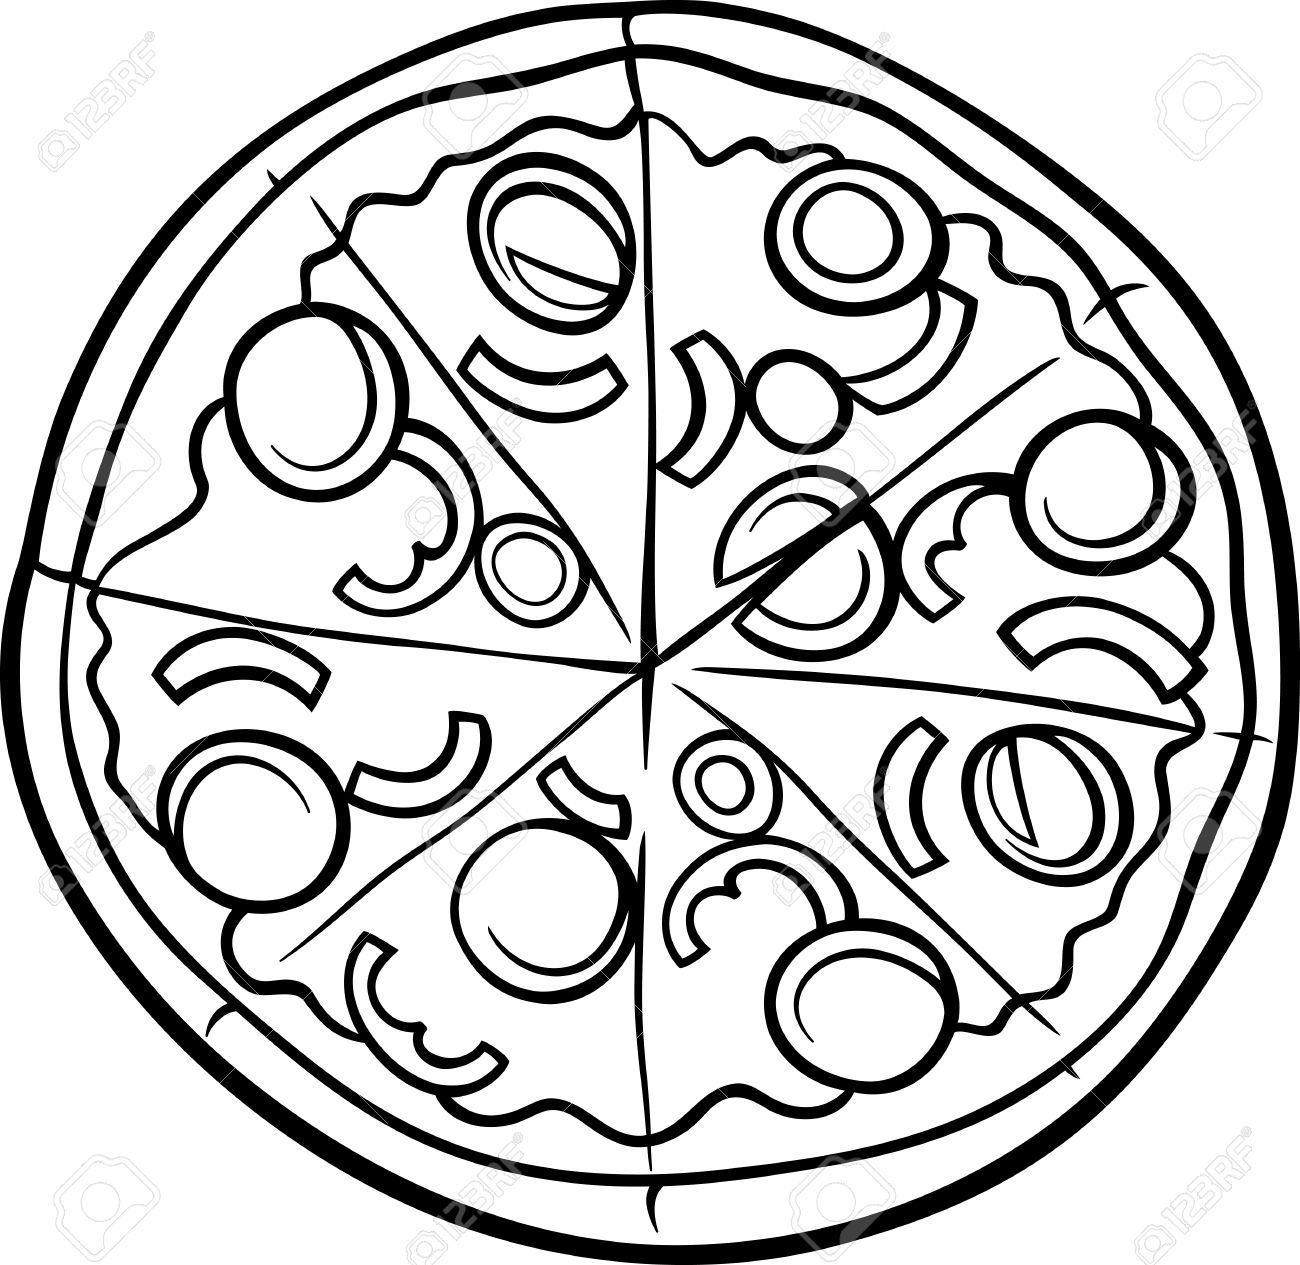 Pizza clipart black and white White Clipart And Square Best